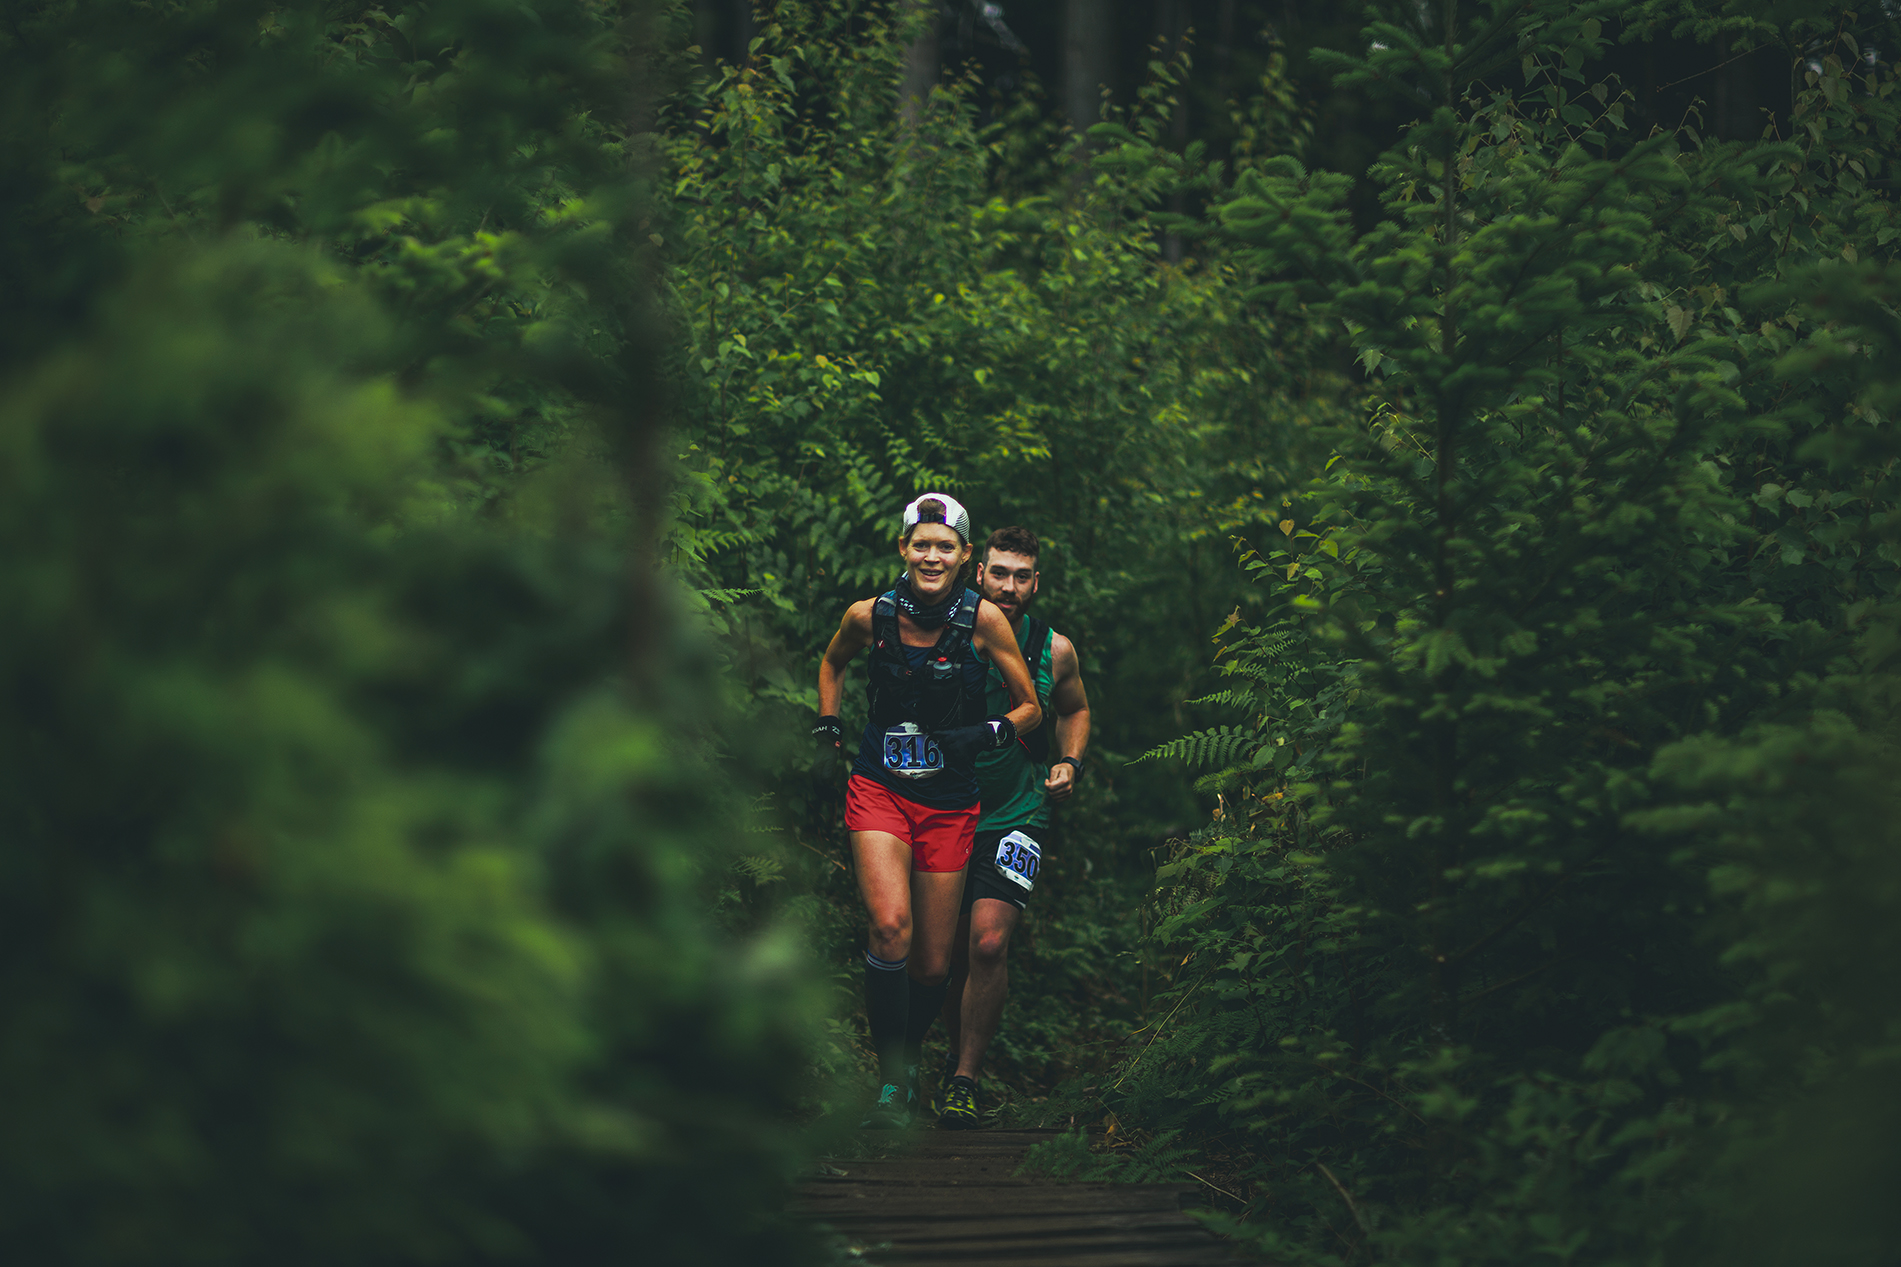 Fraser Valley Trail Races - Bear Mountain - IMG_2411 by Brice Ferre Studio - Vancouver Portrait Adventure and Athlete Photographer.jpg